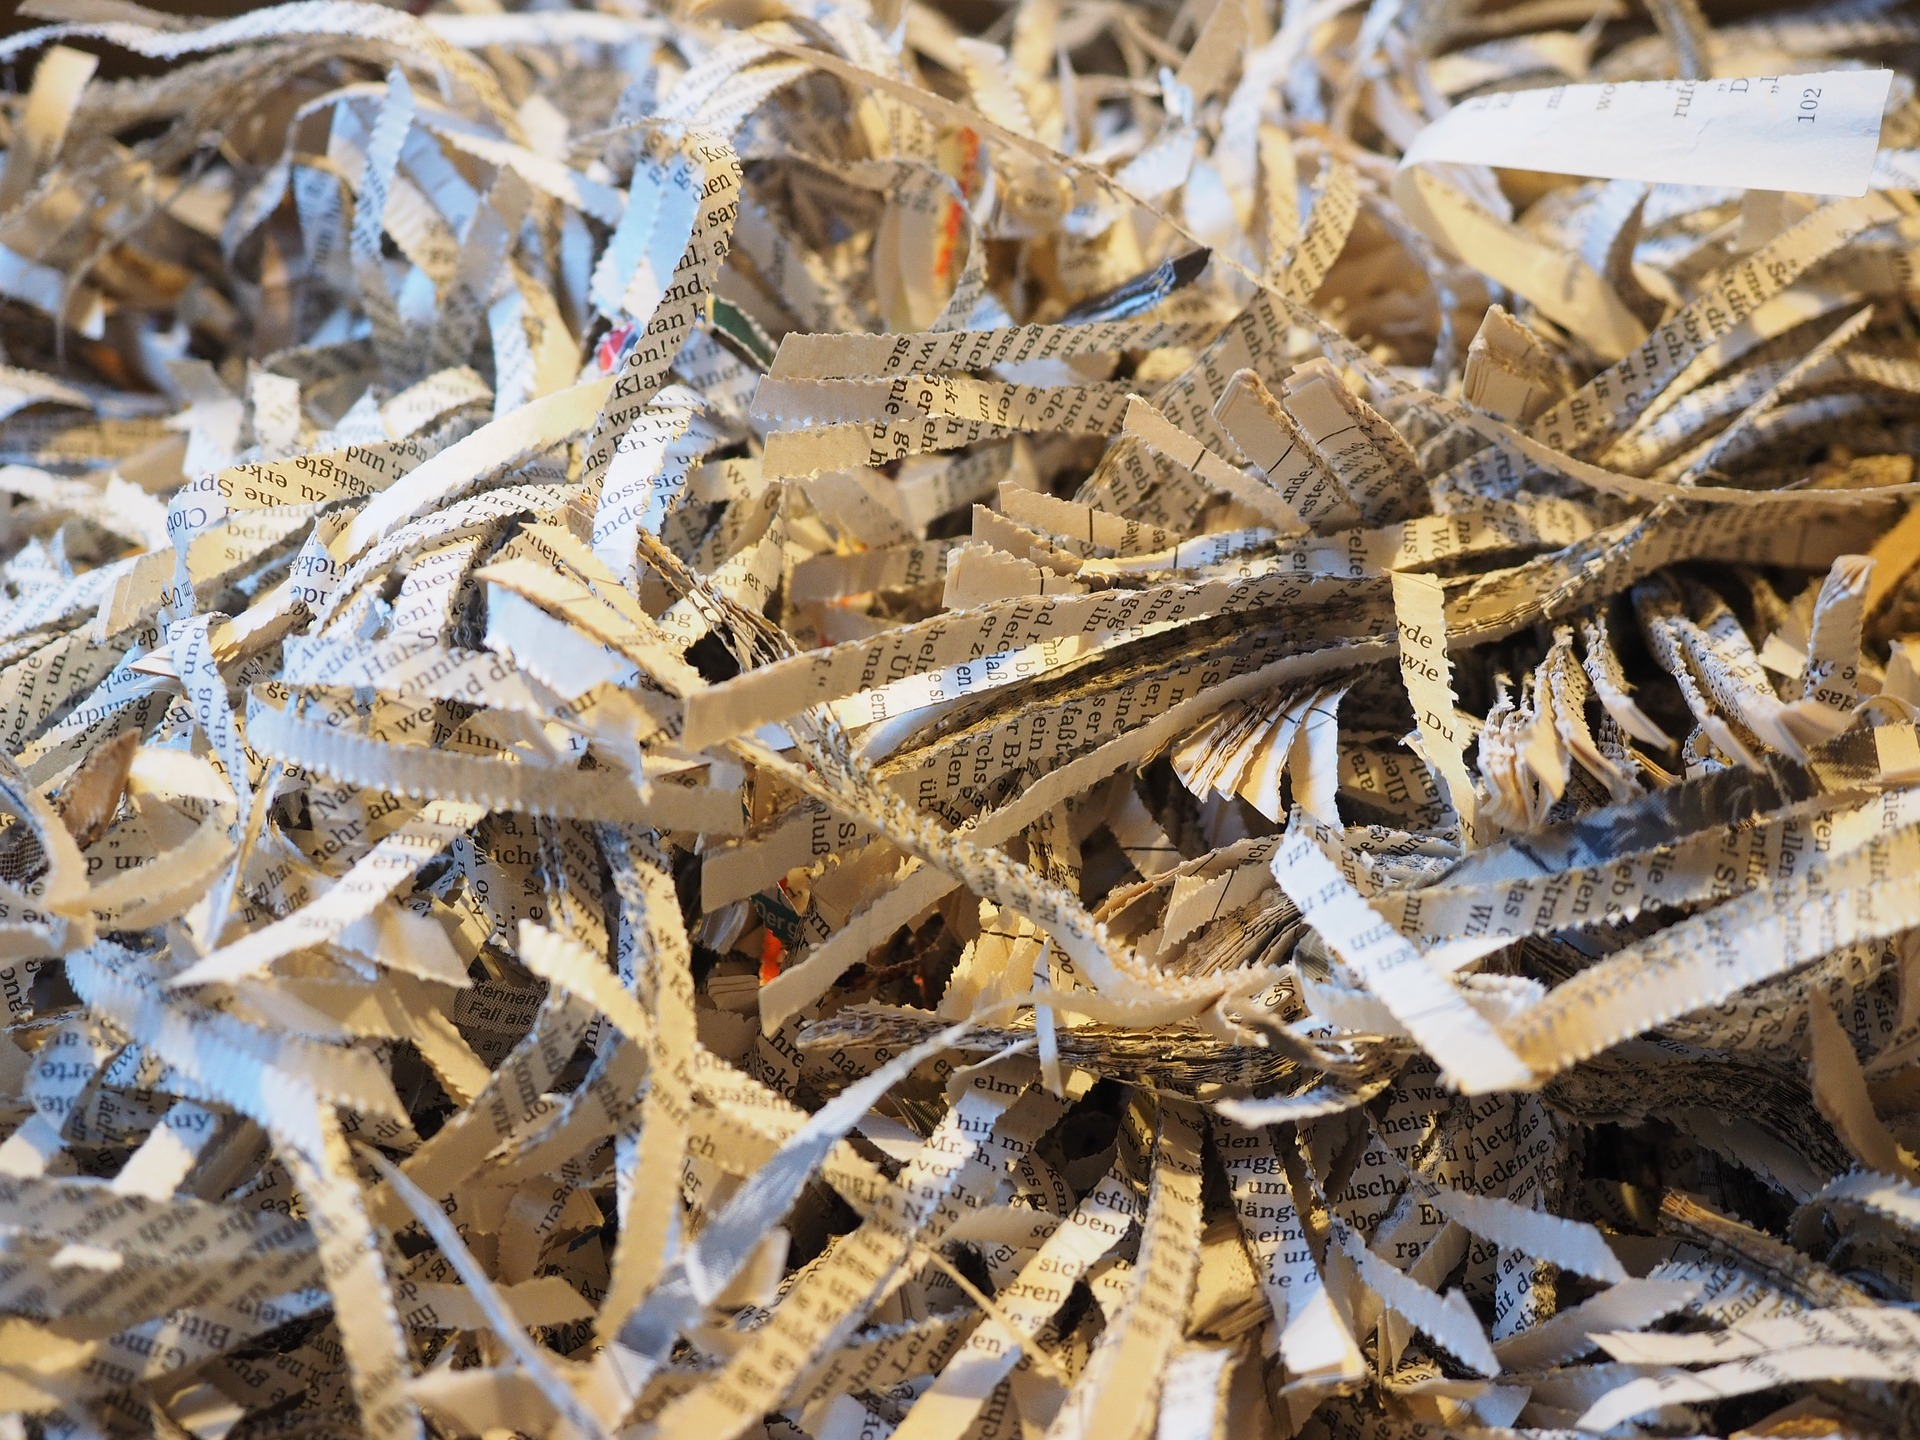 The Results of Shredding Paper Documents